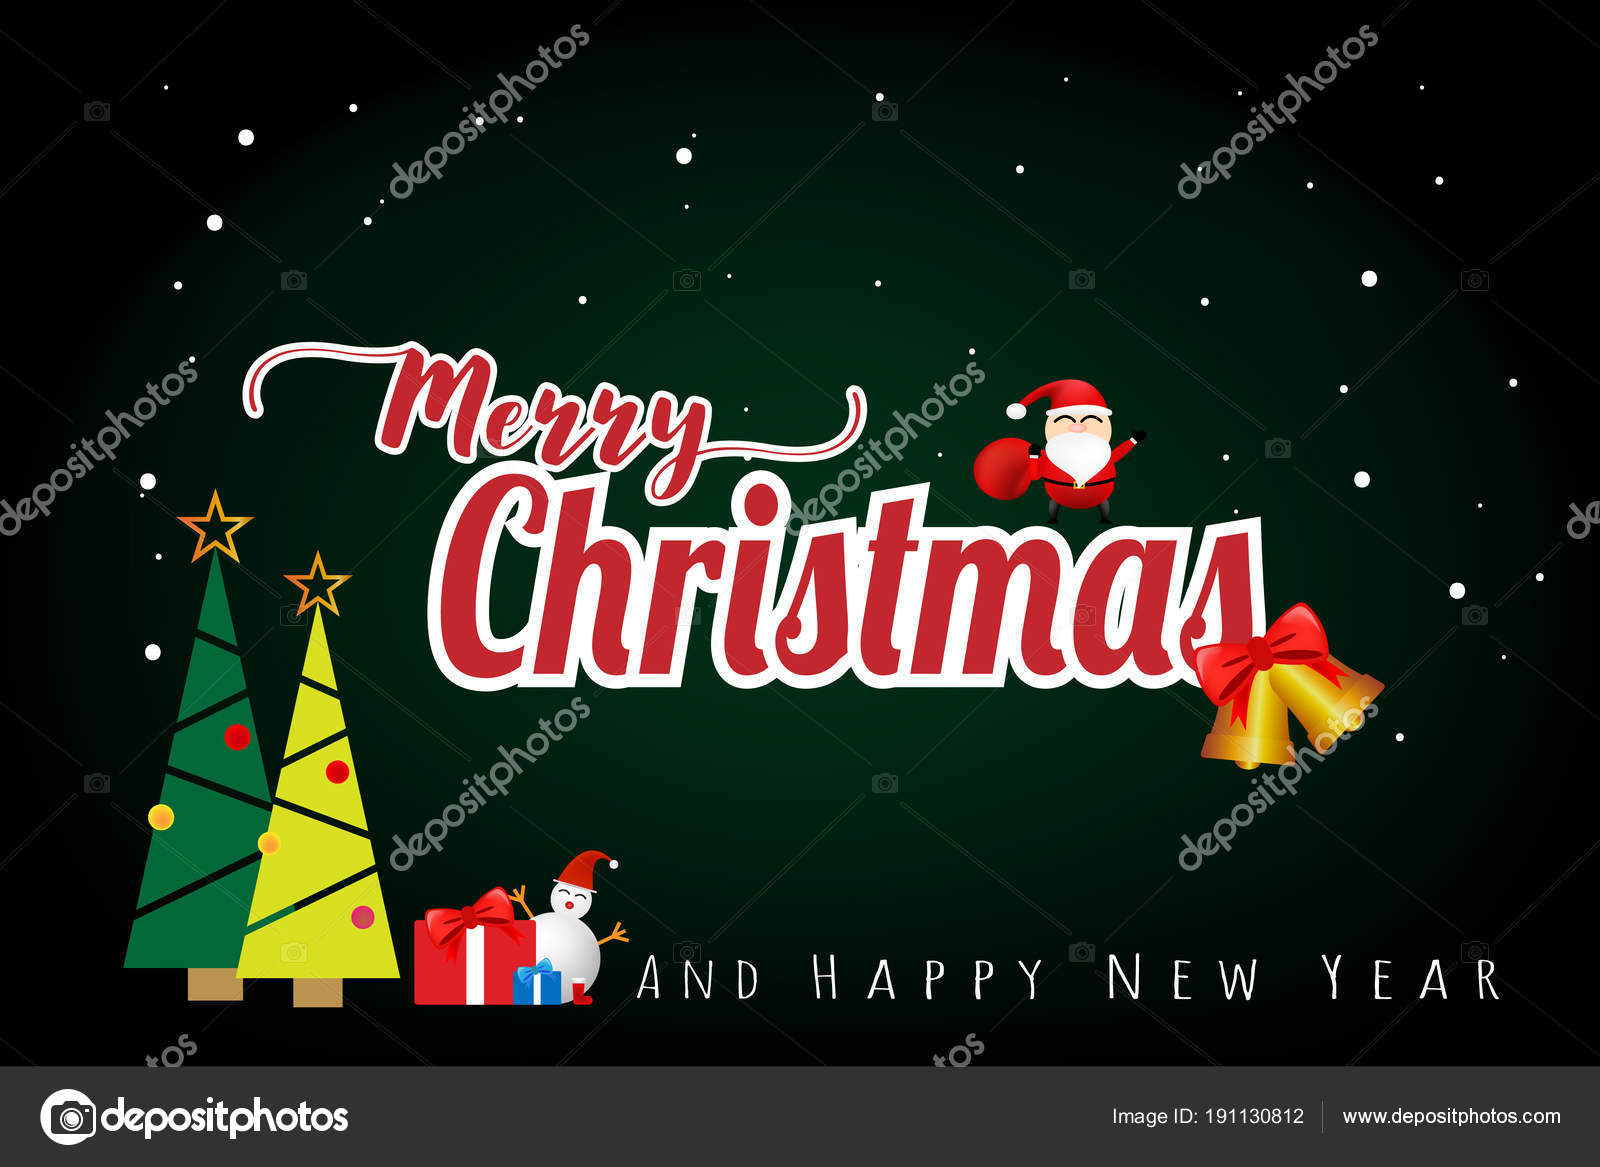 Merry Christmas Happy New Year Concept Green Color Background Vector     Merry Christmas Happy New Year Concept Green Color Background Vector      Stock Vector